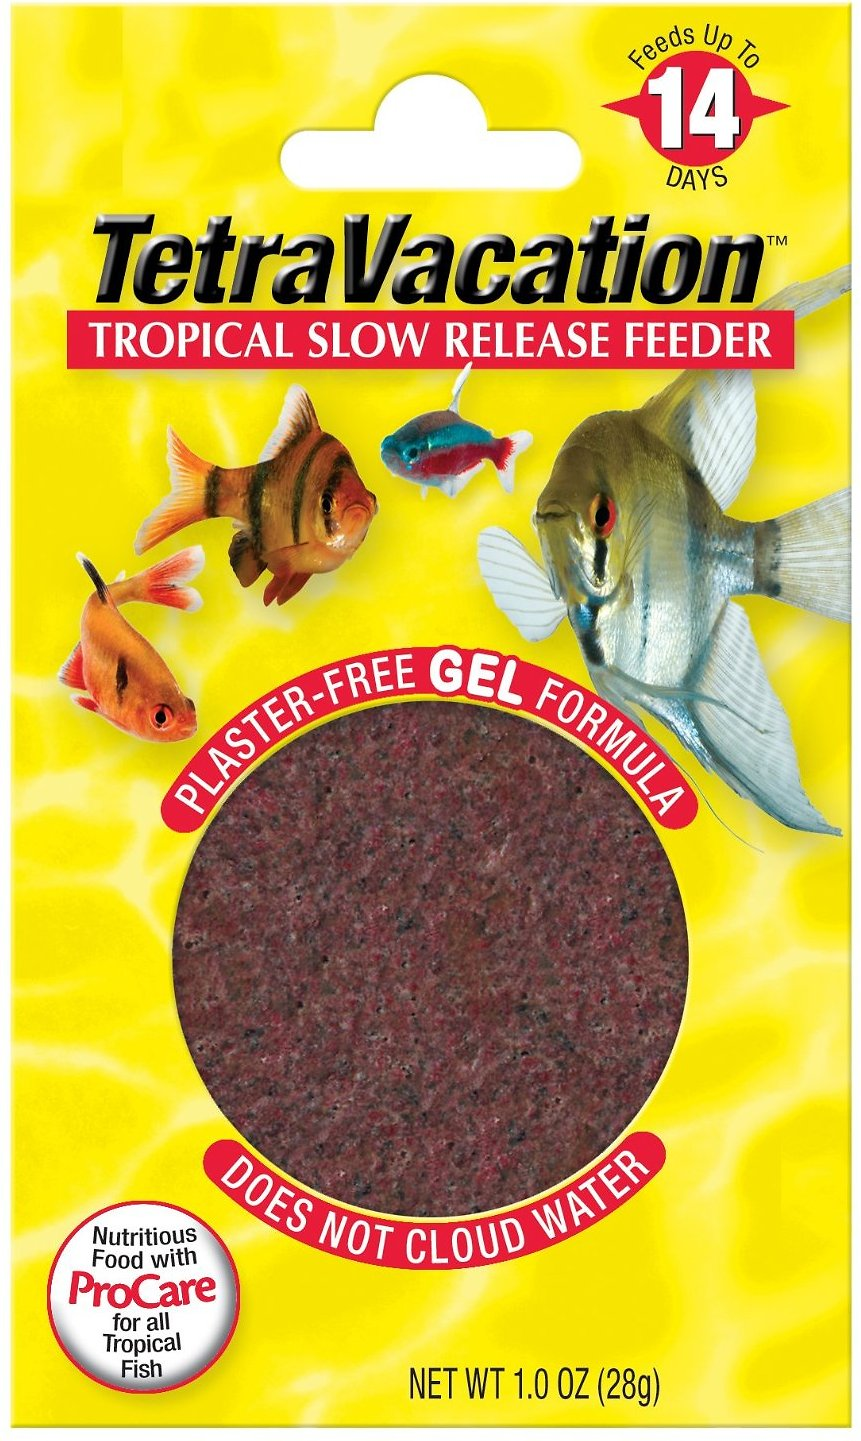 Tetra Vacation Tropical Slow Release Fish Feeder Food Image